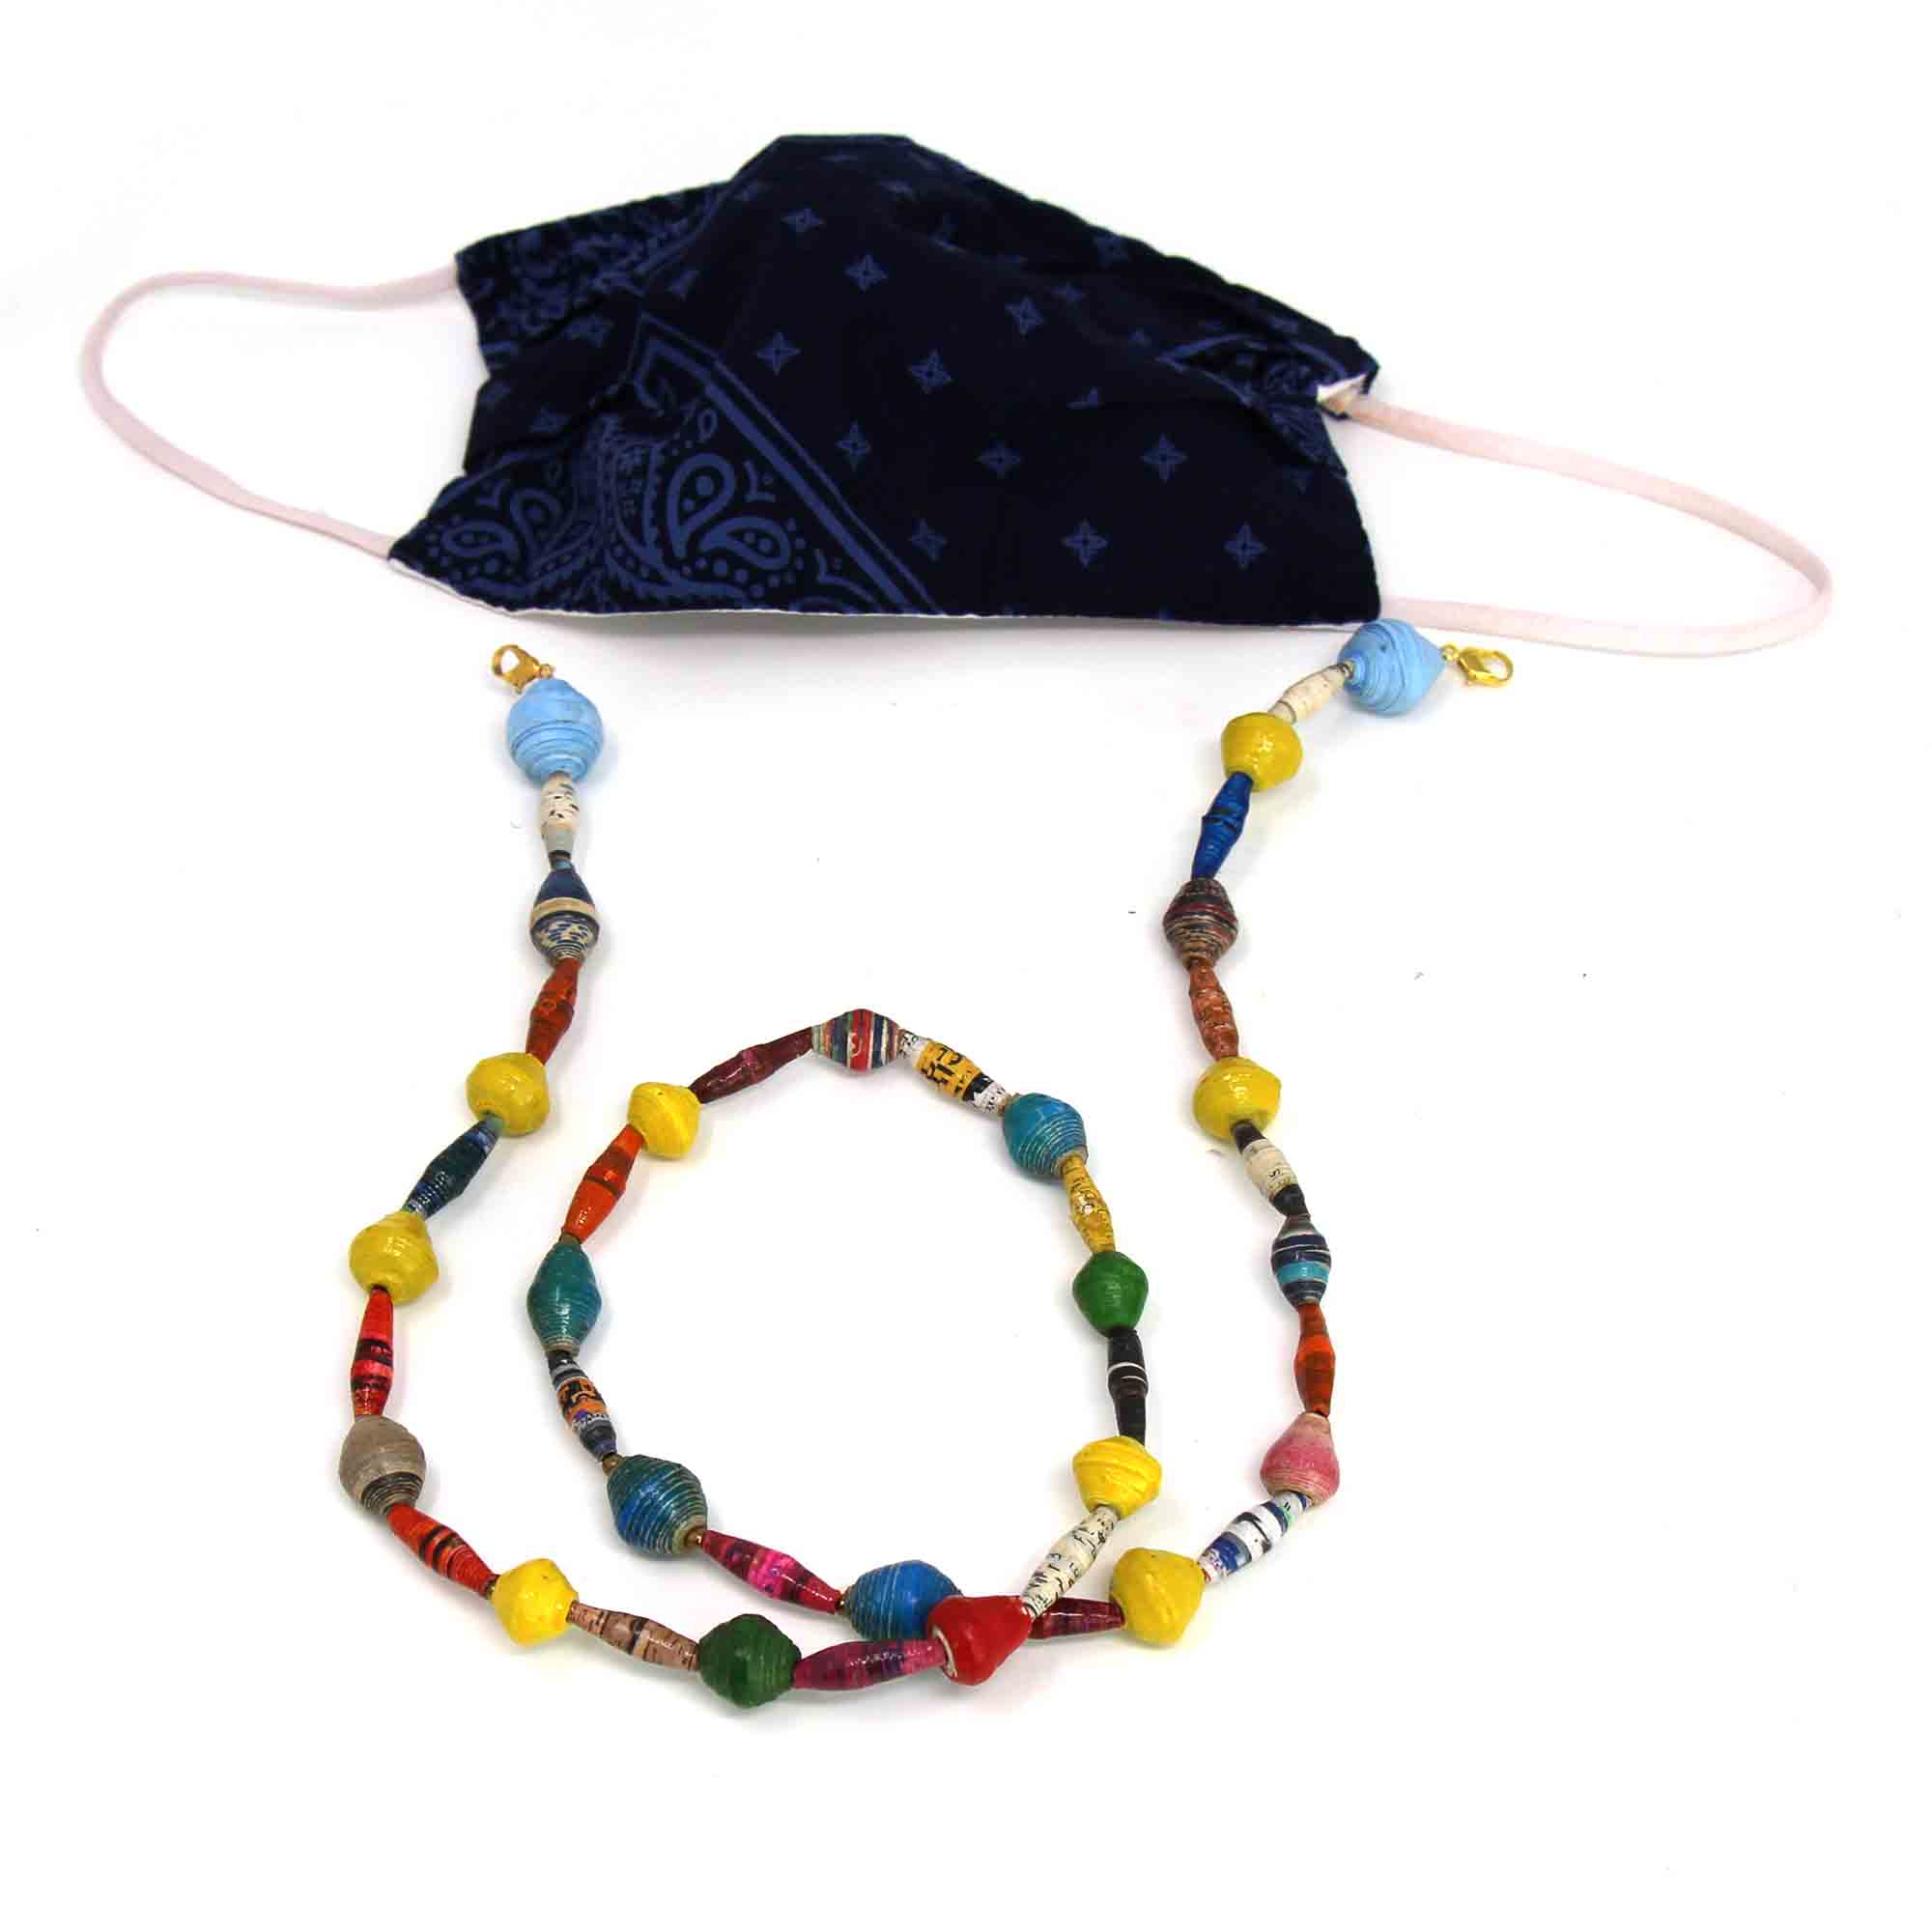 Paper Bead Mask Chain or Eyeglass Holder